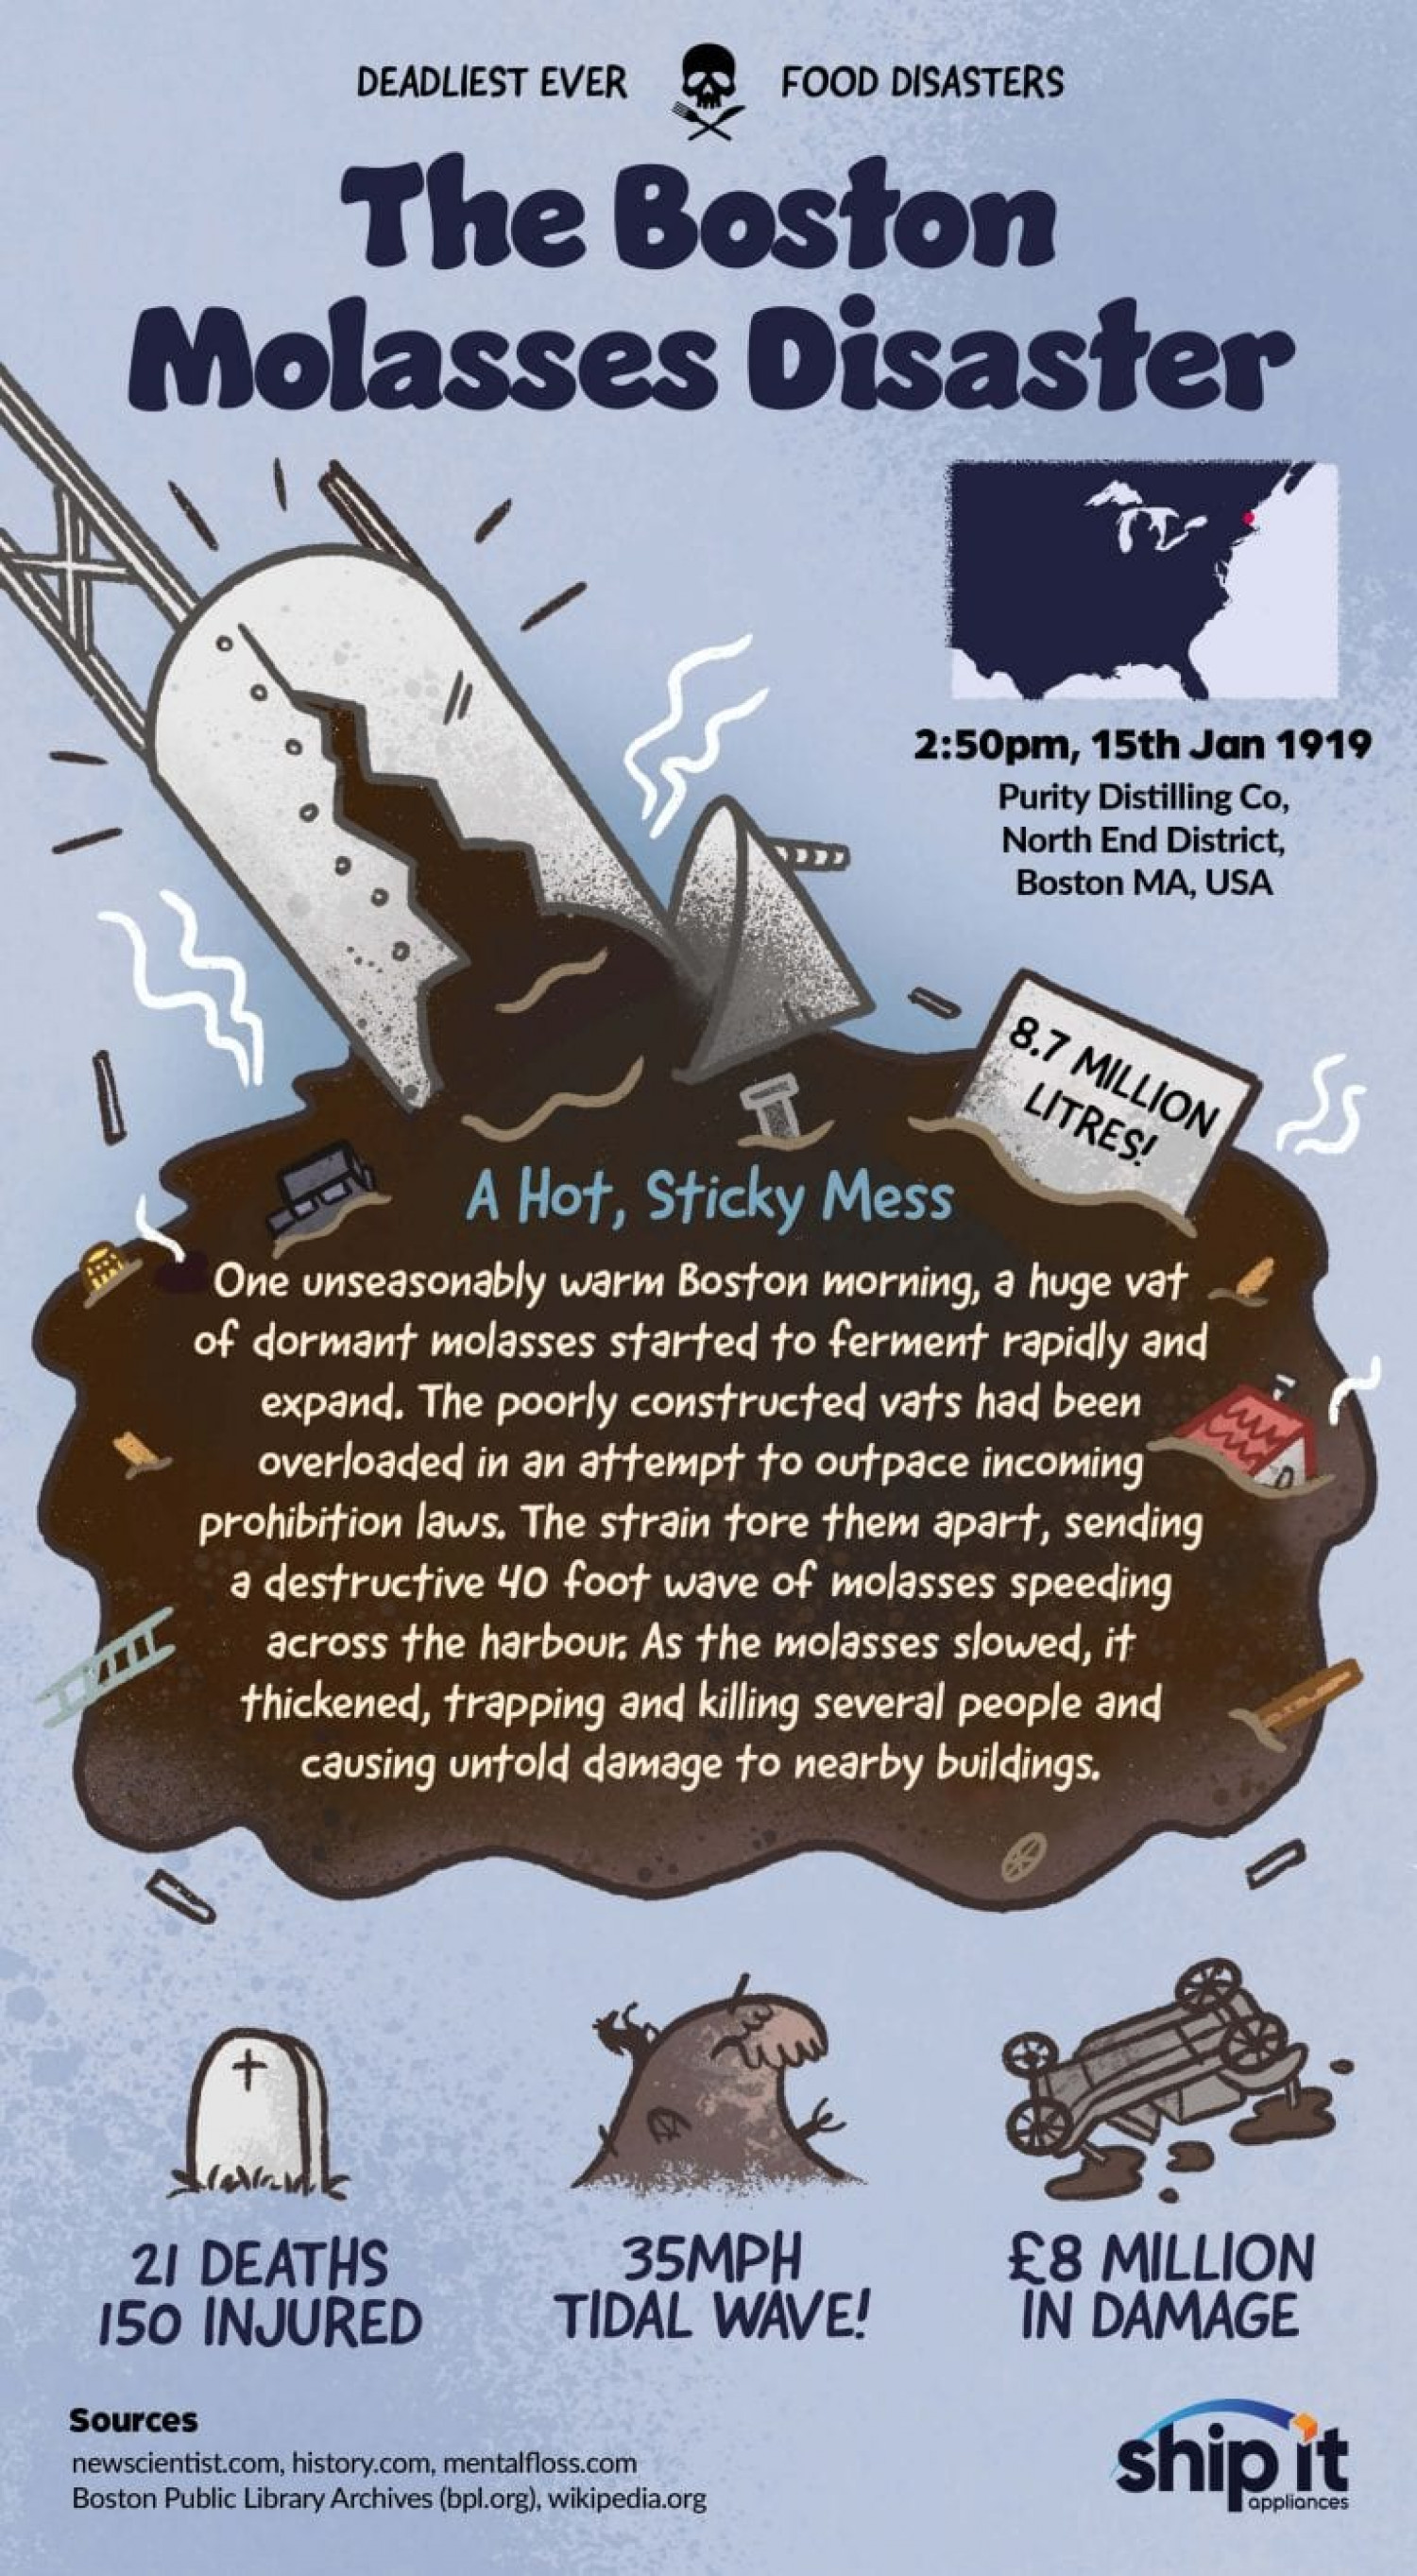 Food Disasters Around The World: Boston Molasses Mishap Infographic